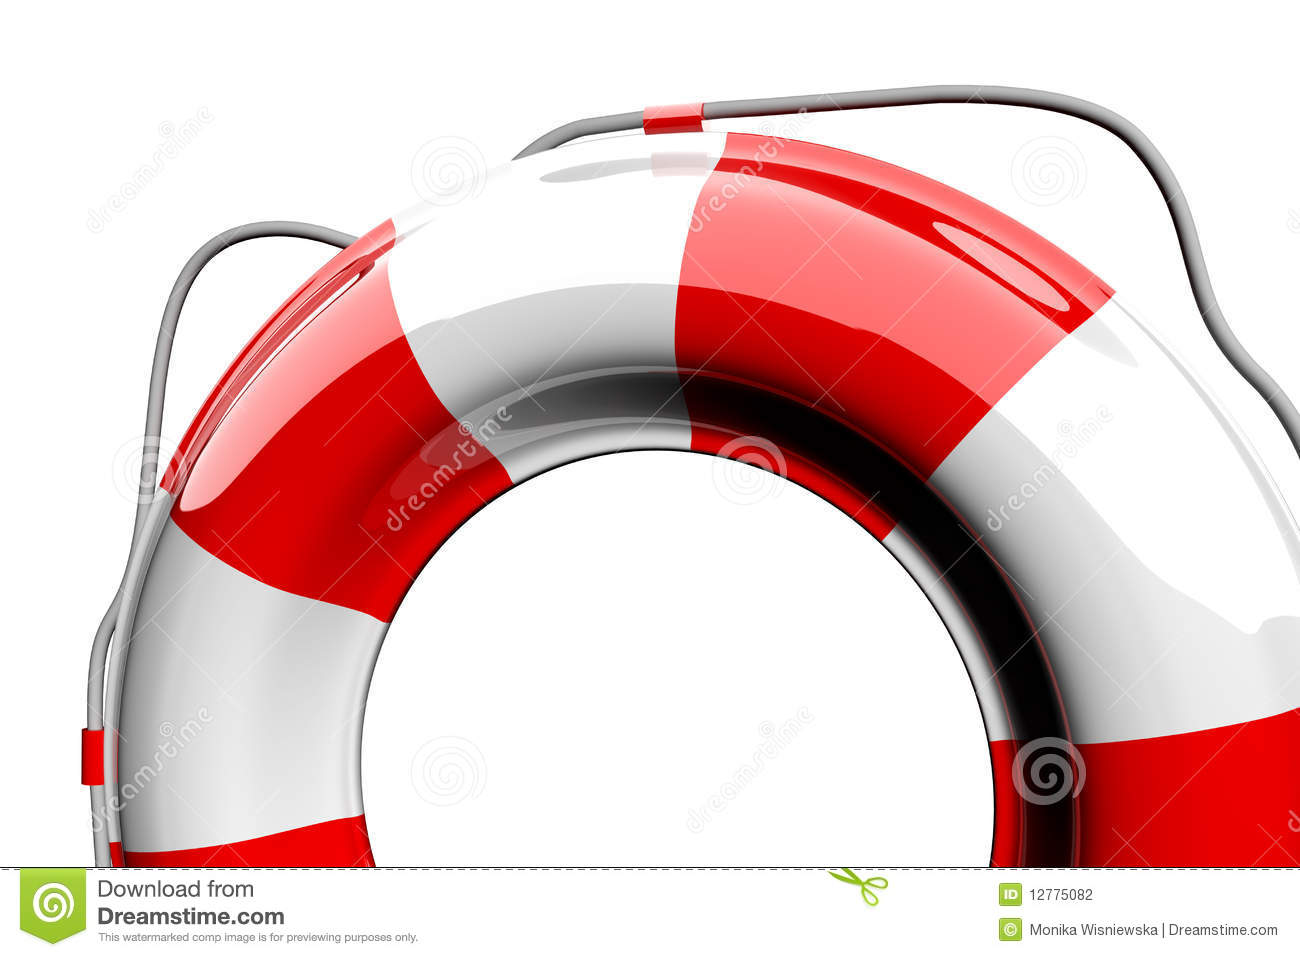 Red and white lifebelt